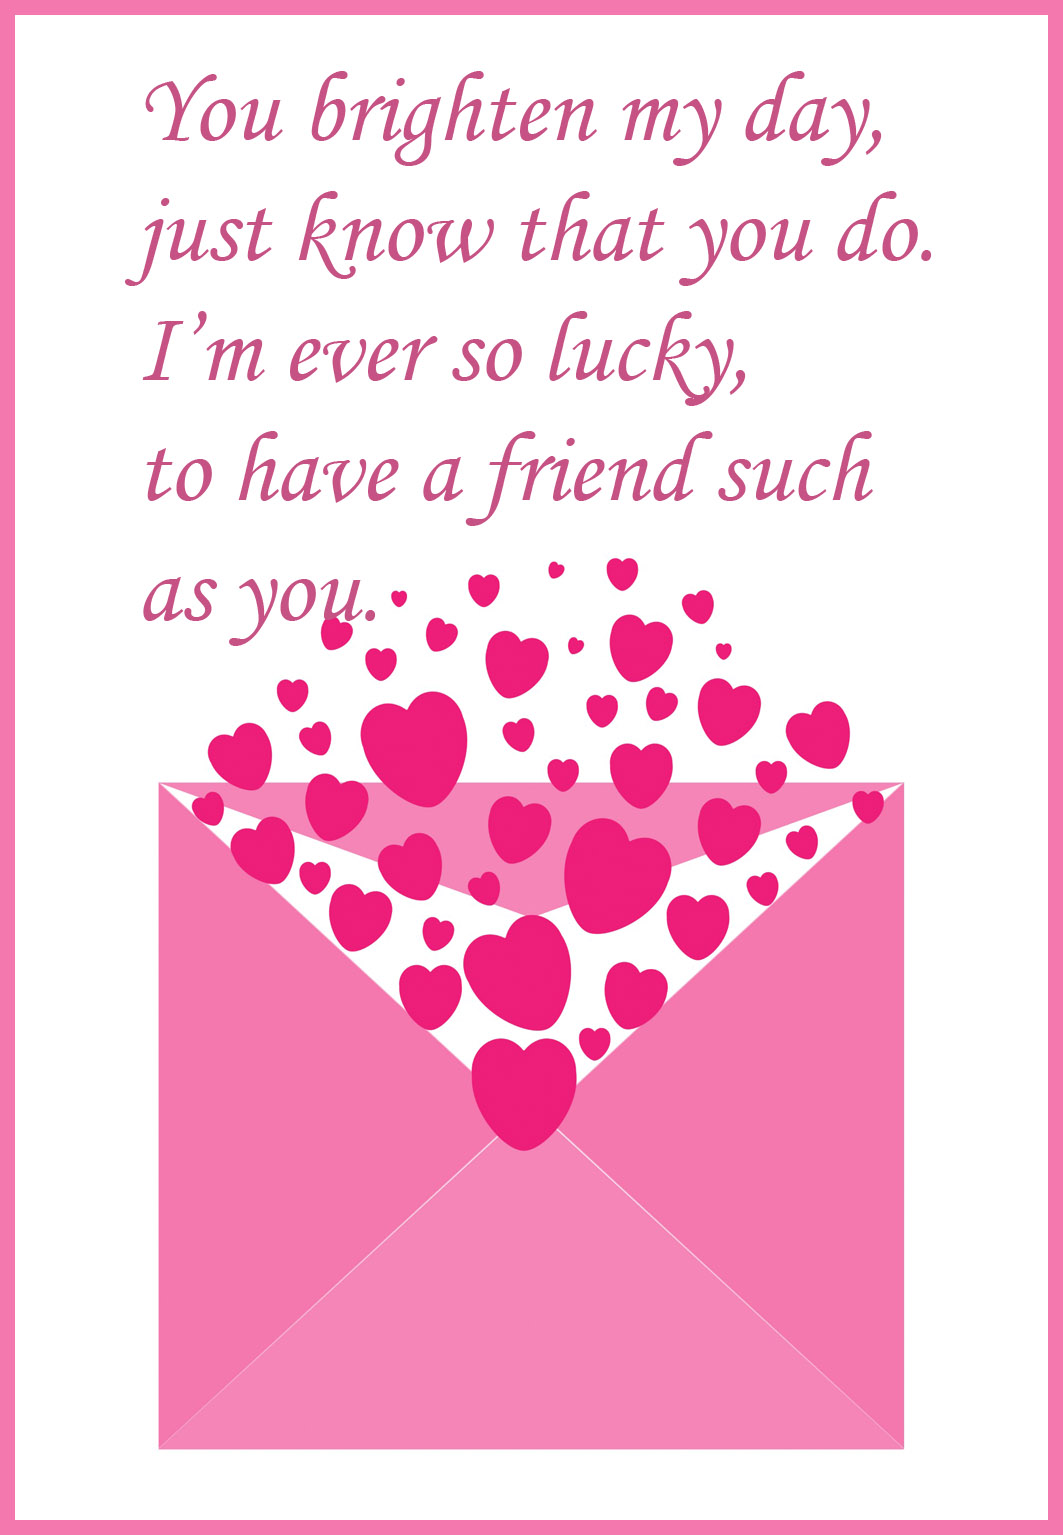 Friendship Valentines Day Cards Amy Rees Andersons Blog